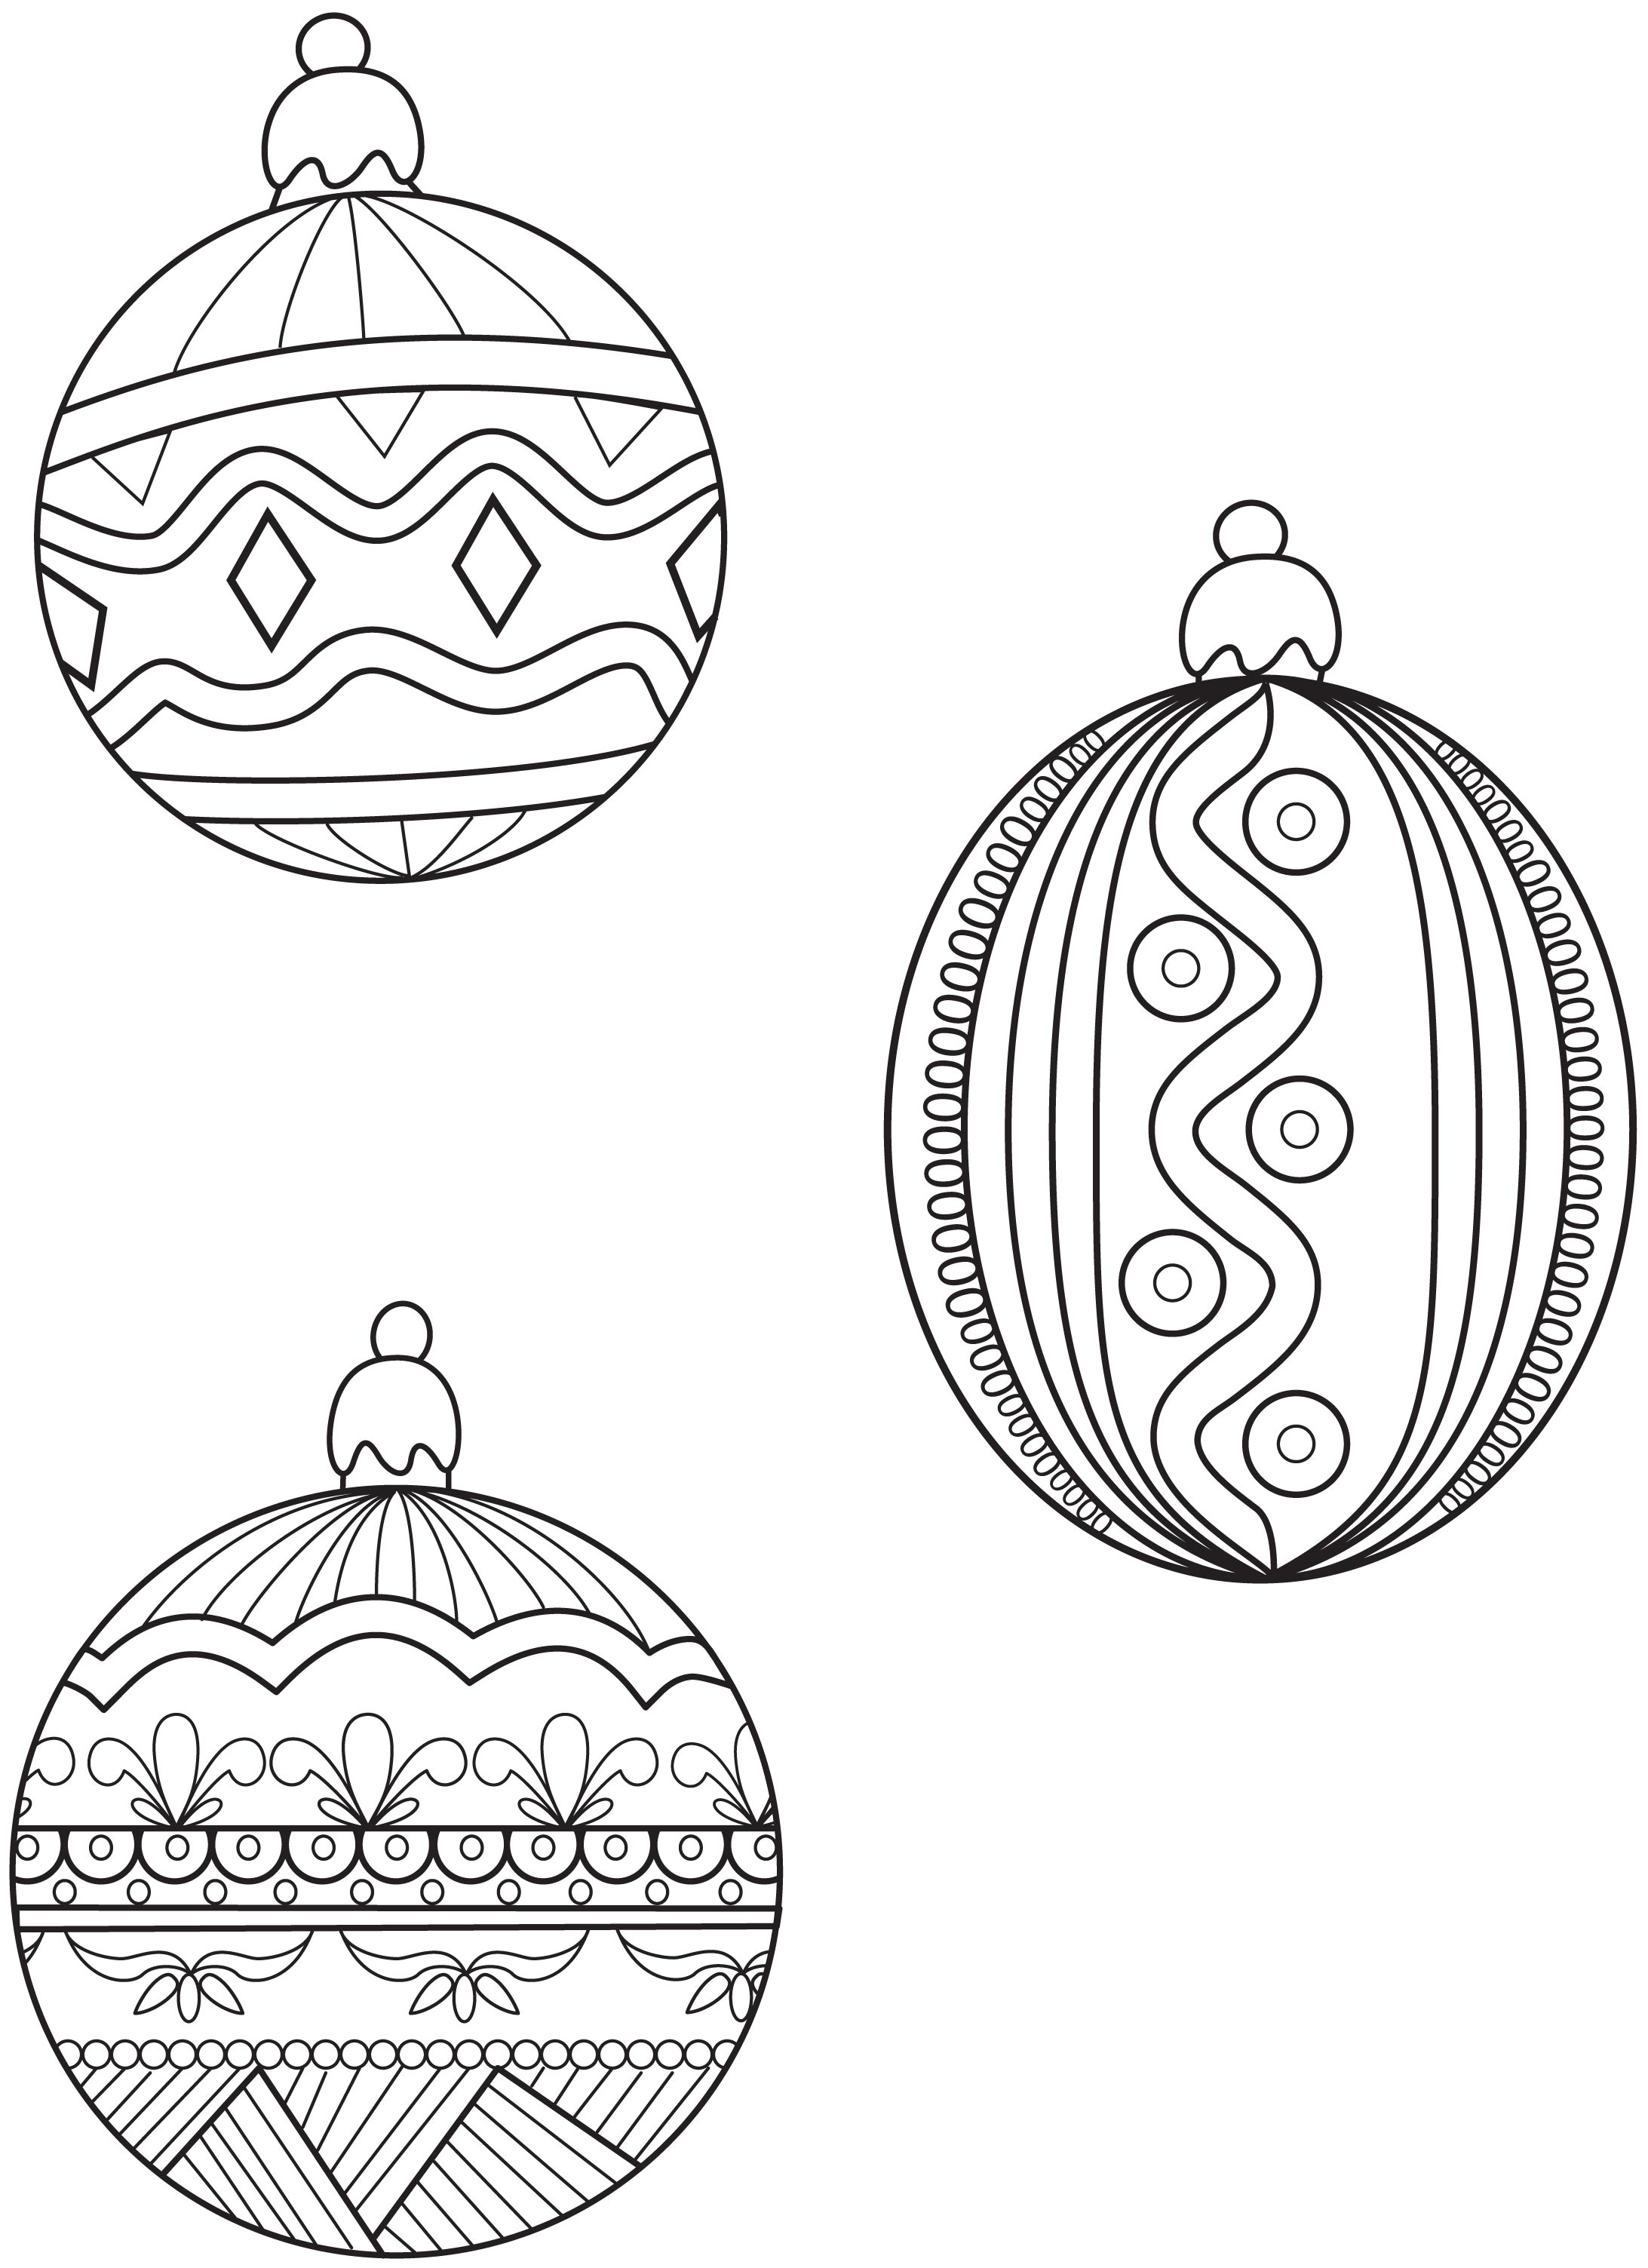 It is a picture of Sweet Christmas Ornaments Printable